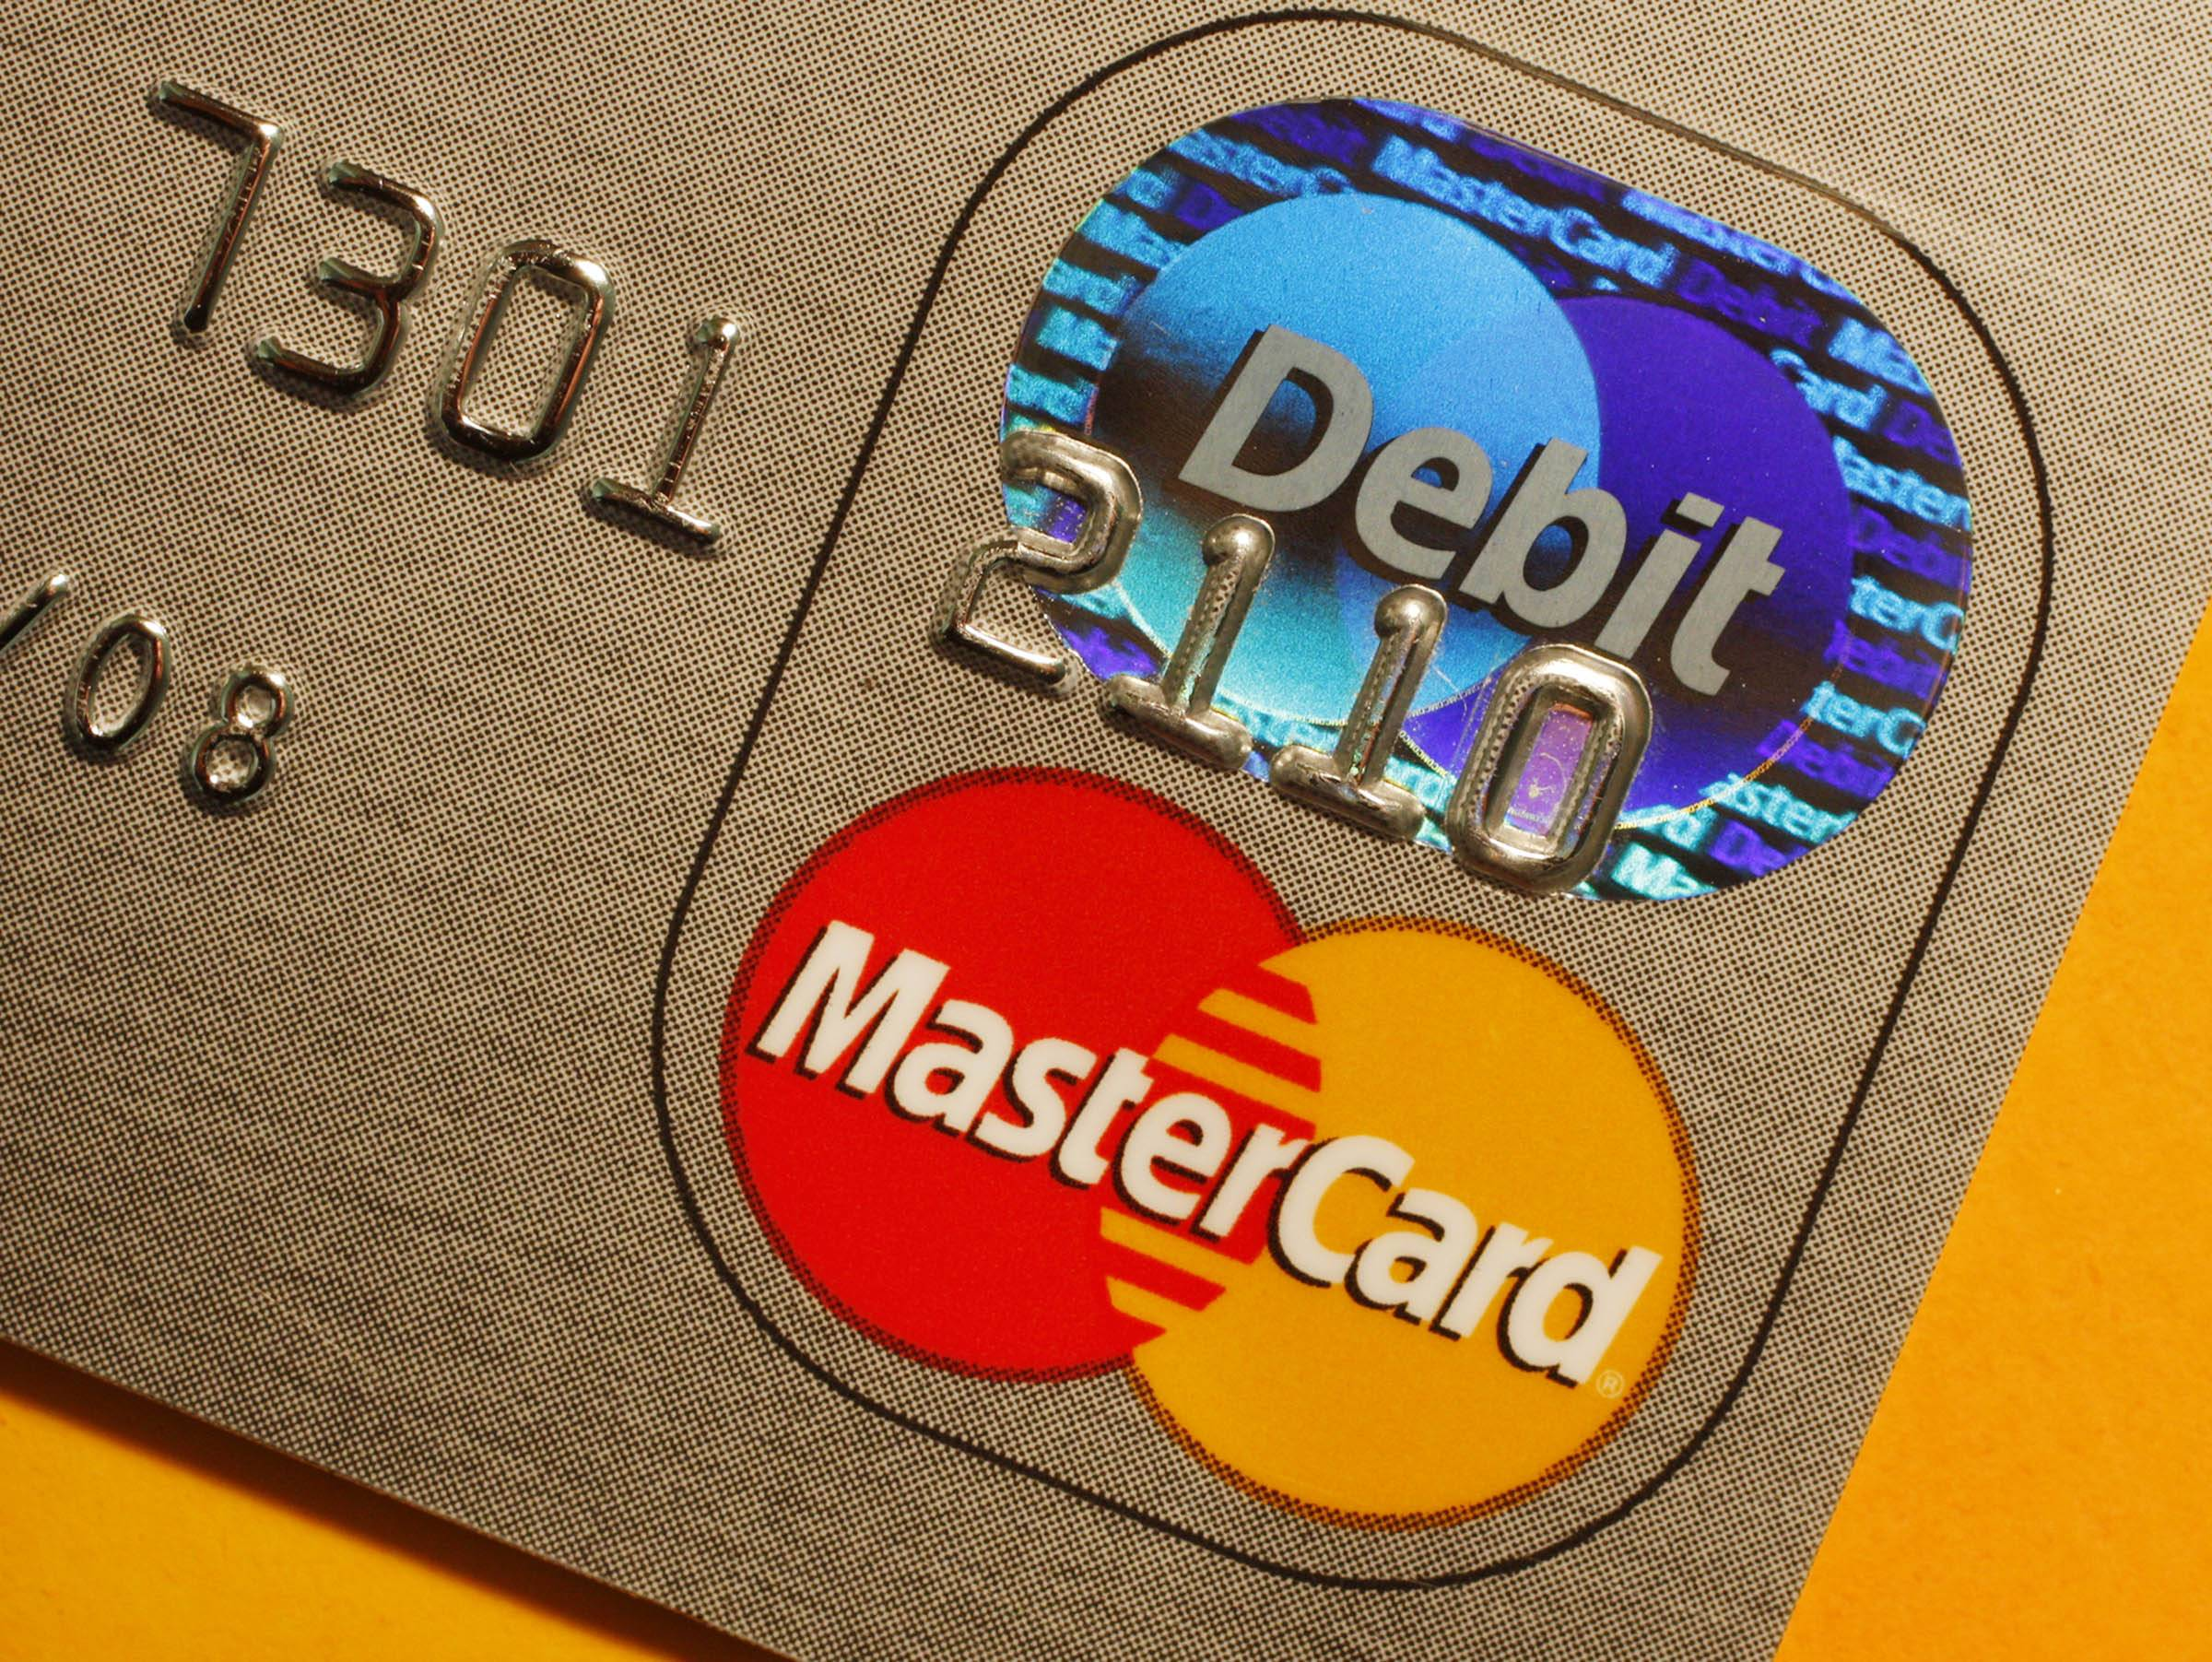 In the next few months, AT&T Inc. will test a service that verifies MasterCard transactions by using a phone's whereabouts — as long as it has customers' permission.